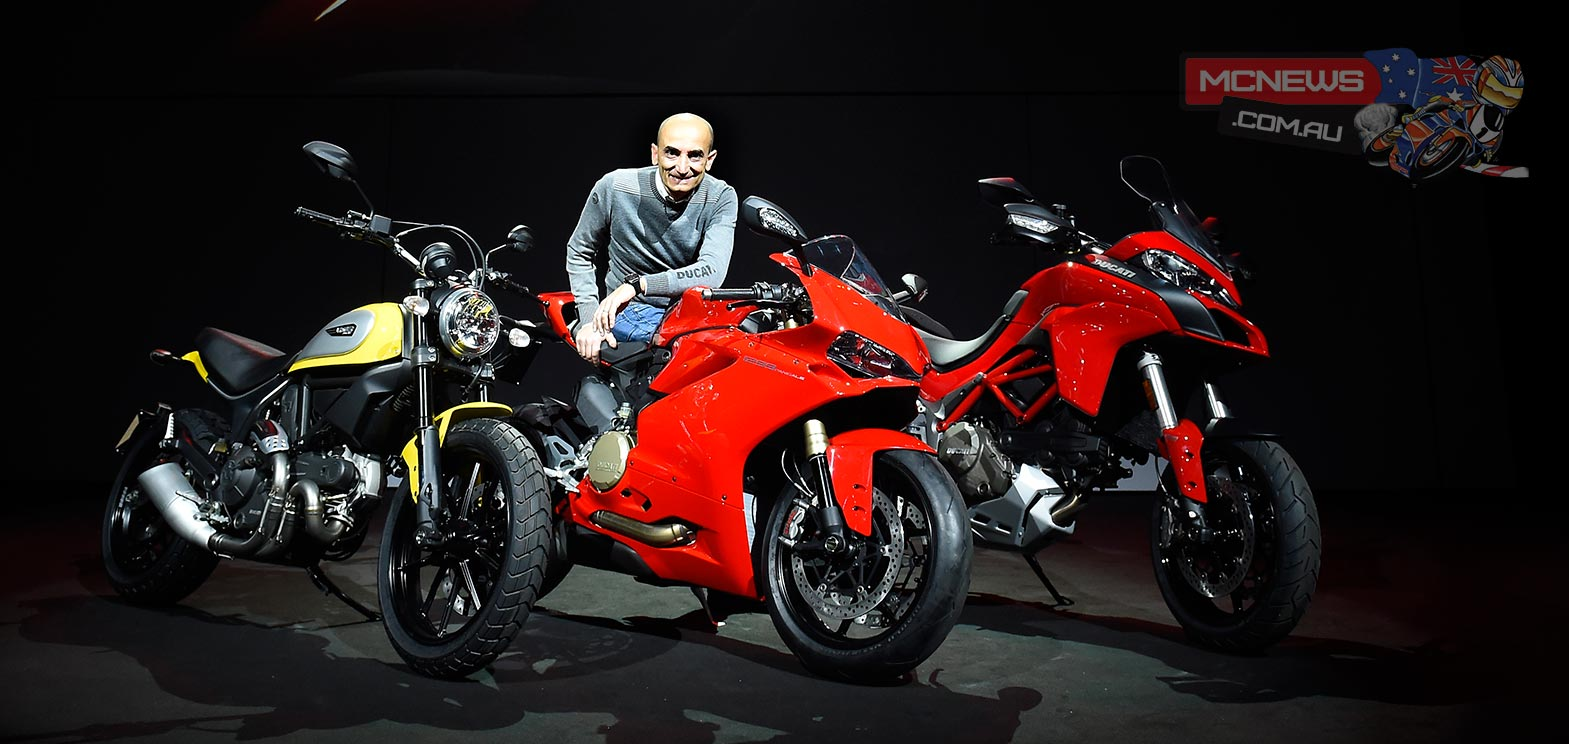 """For Ducati, 2015 is a milestone"", stated Claudio Domenicali, CEO of Ducati Motor Holding during the presentation press conference, ""as Ducati enthusiasts will be able to choose from a range more technologically advanced and innovatively designed than ever. A sports bike, the 1299 Panigale, that promises to set a whole new on-track standard thanks to raw power and sophisticated electronics, and a new all-round Multistrada 1200 that combines sports handling and performance with smoothness and low fuel consumption at a whole new level. With 'The Land of Joy', the Scrambler brand will be providing dealerships with a breath of fresh air and high spirits, offering a bike with a never-before-seen mix of motorcycling modernity and heritage""."